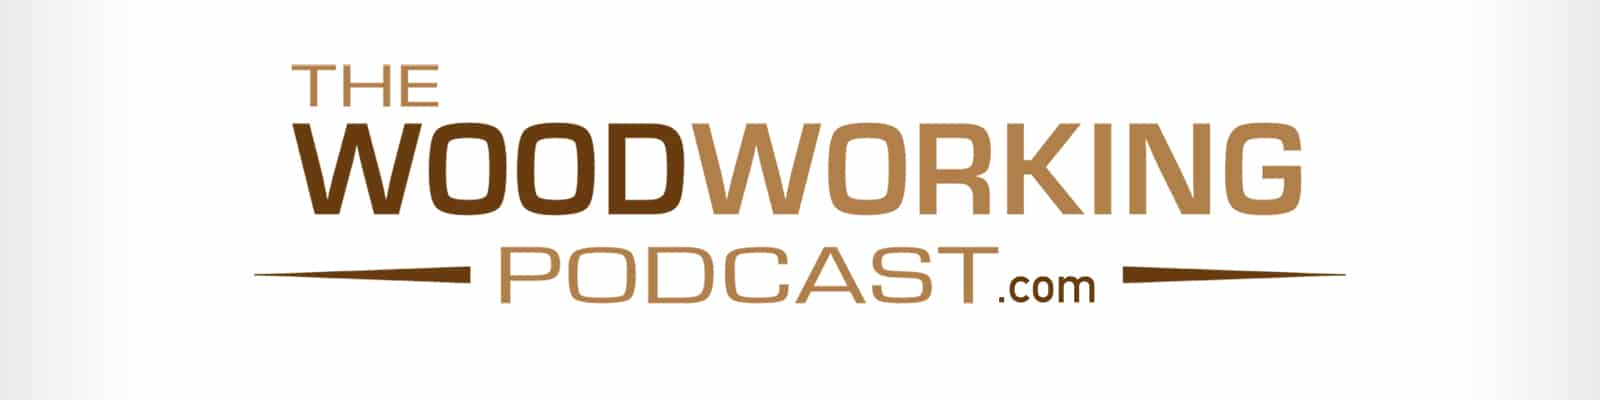 woodworking-podcast-logo